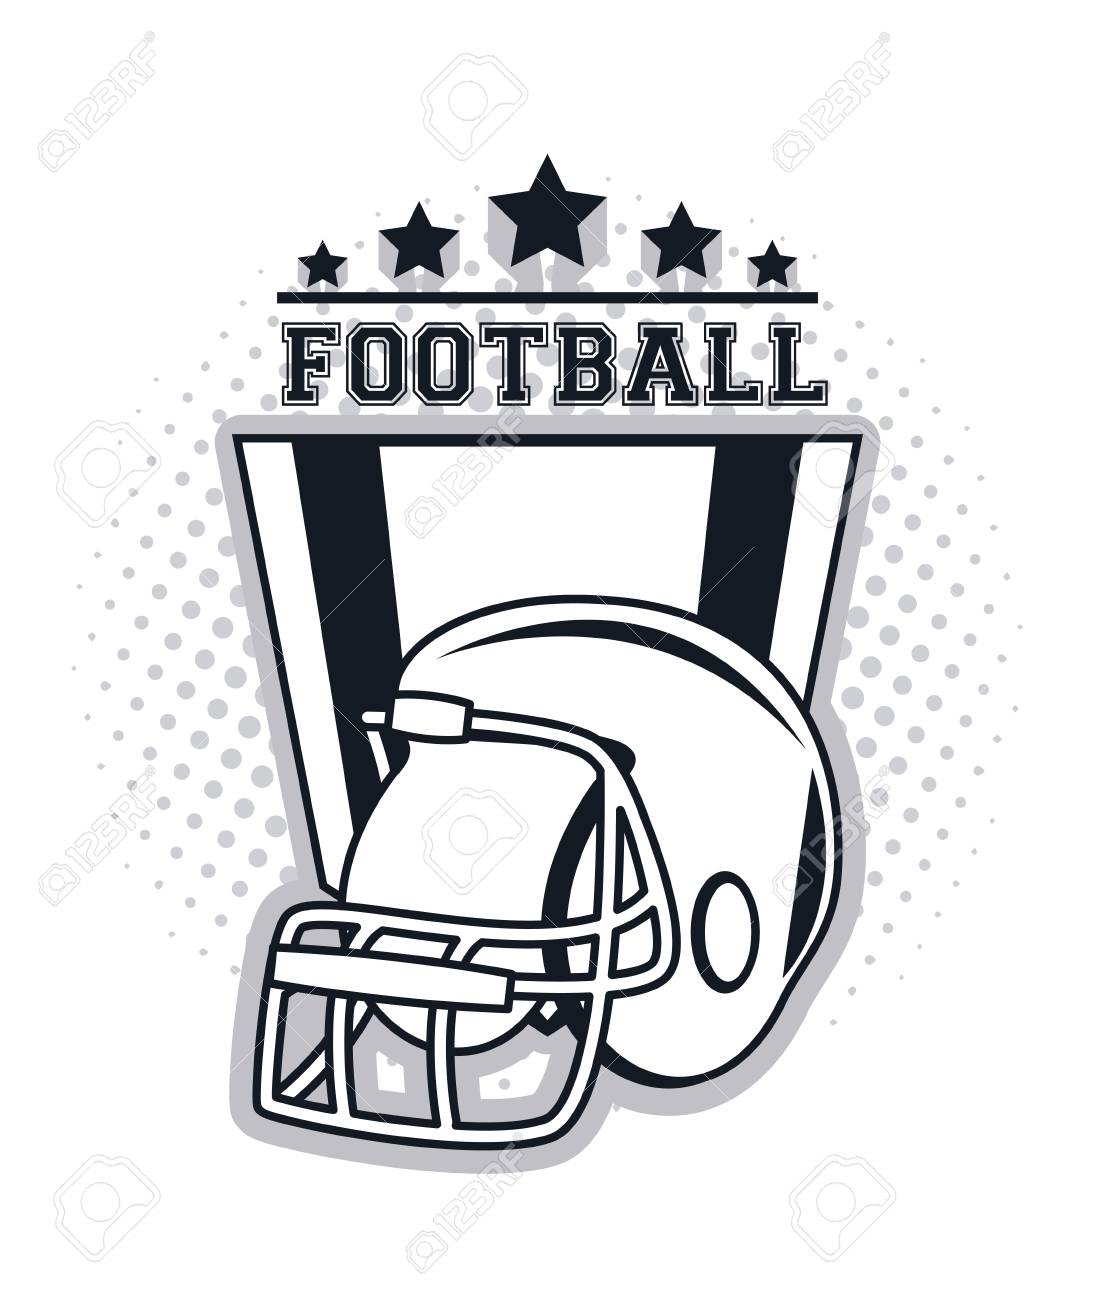 Football Helmet Icon Drawing With Stars Vector Illustration Graphic